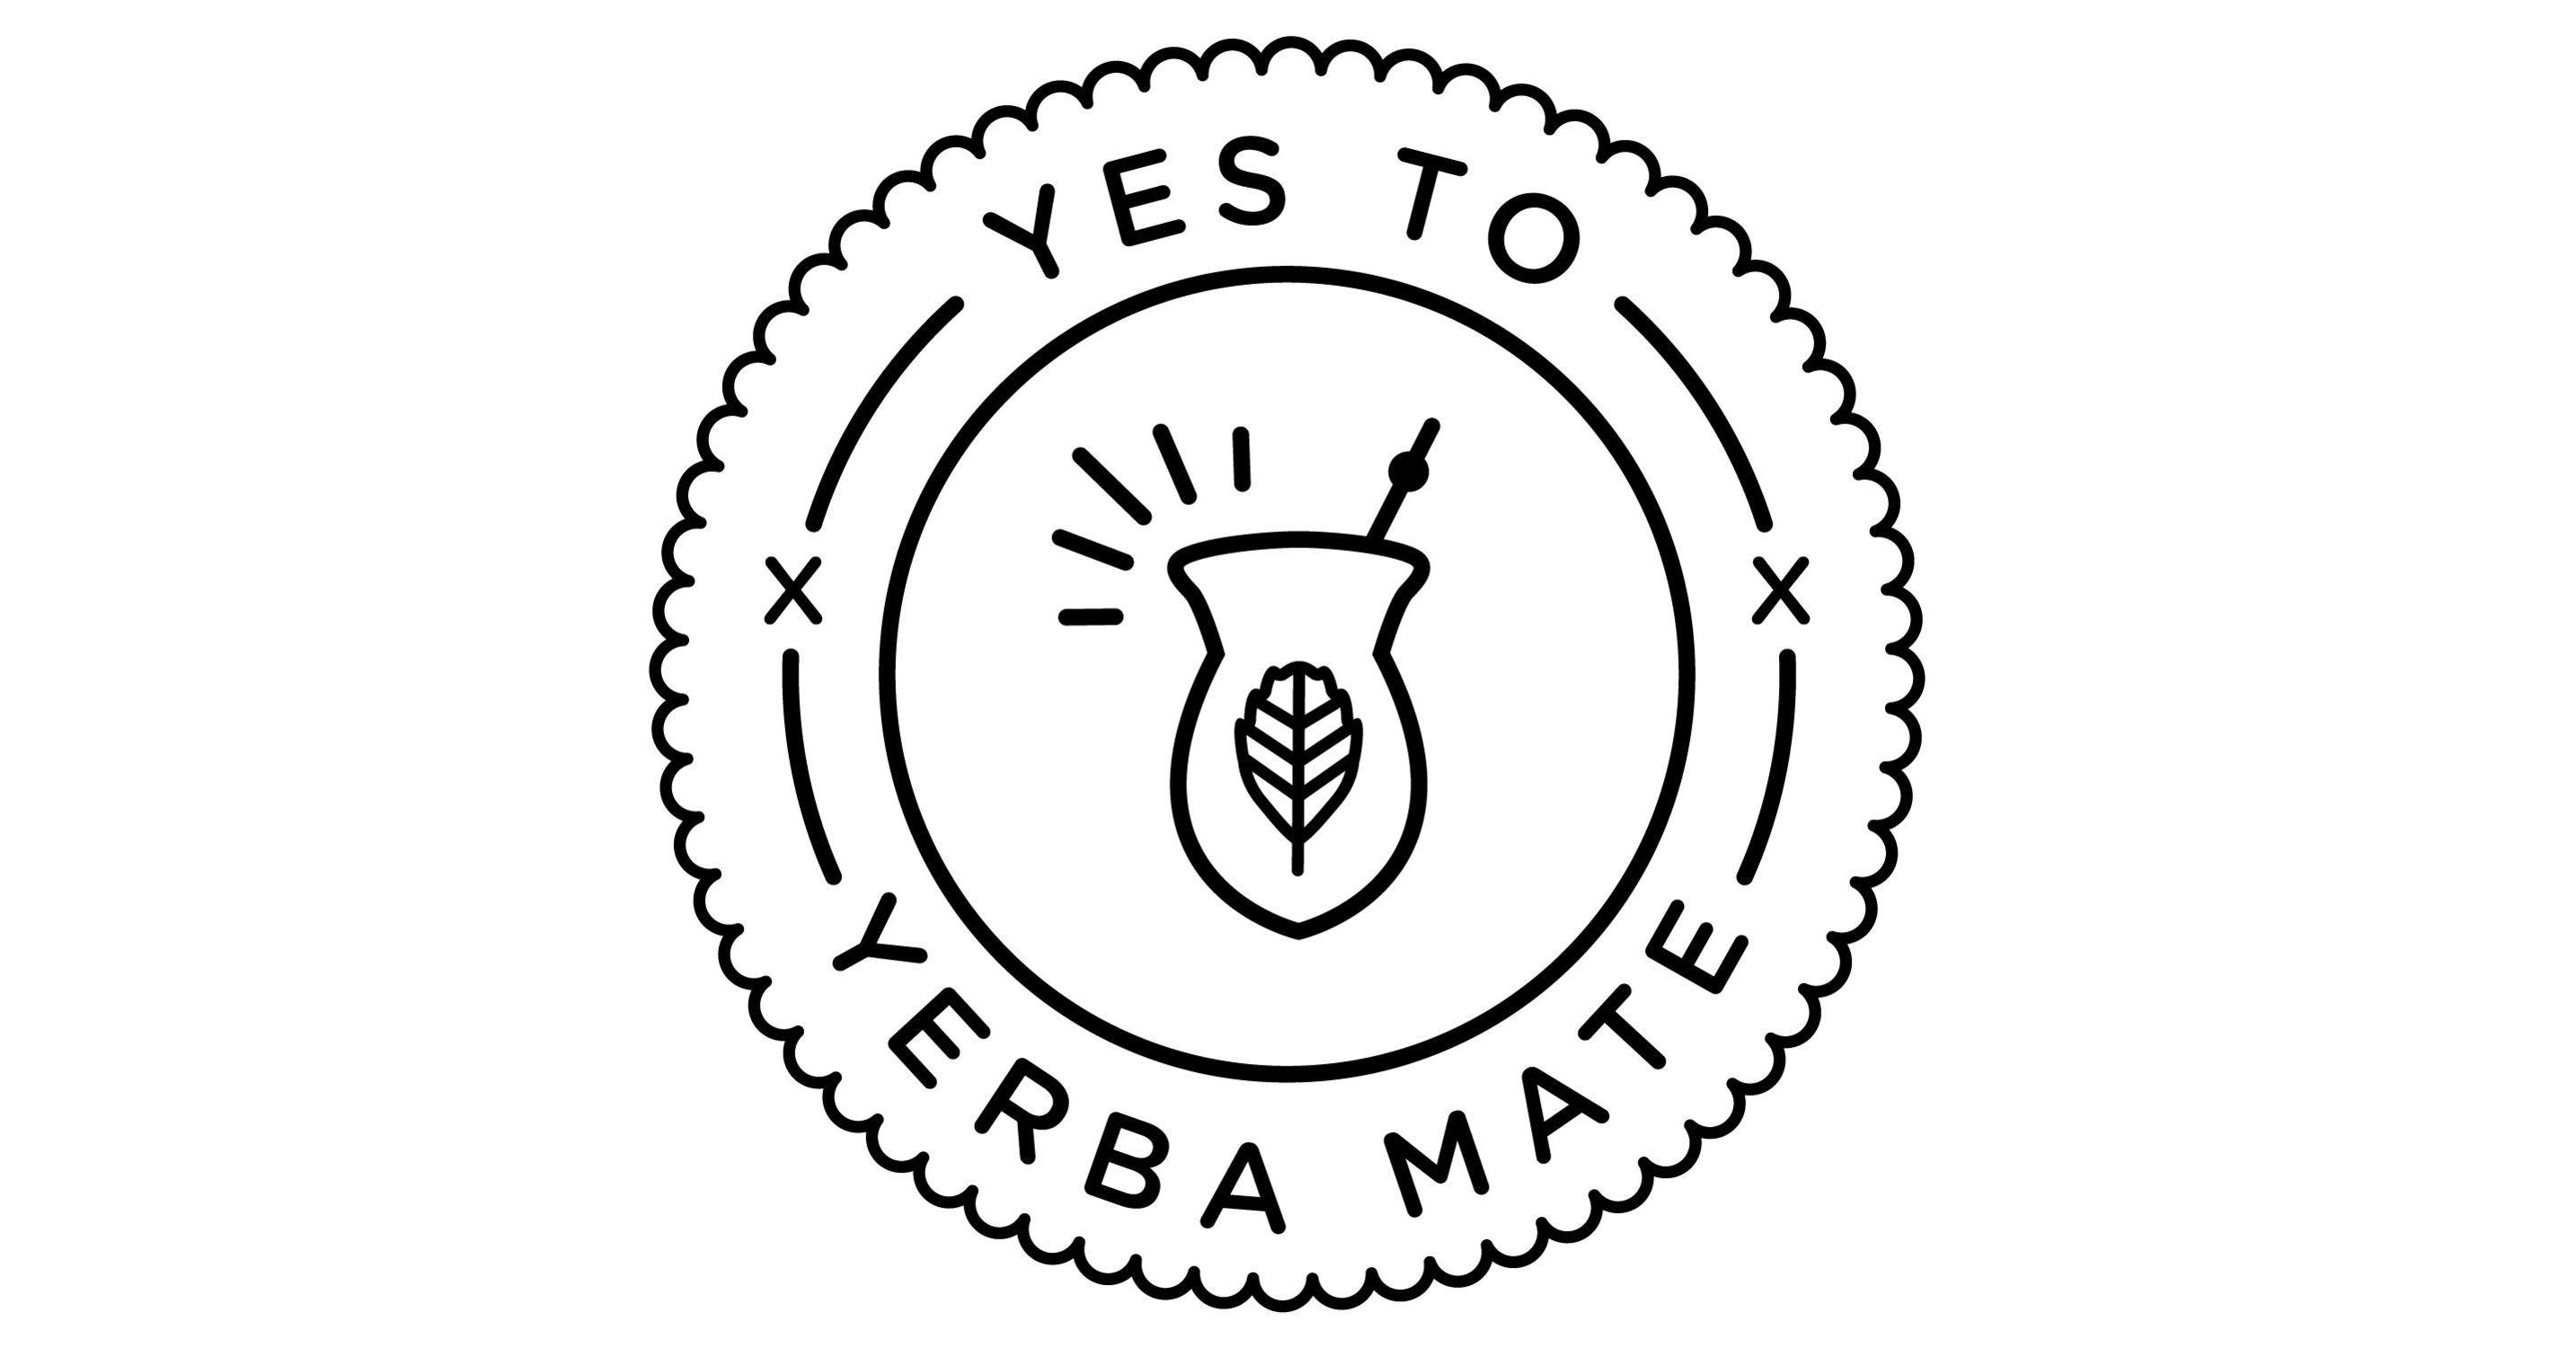 Move Over Matcha and Moringa: Argentine Yerba Mate Is the Next Super-Beverage You've All Been Waiting For